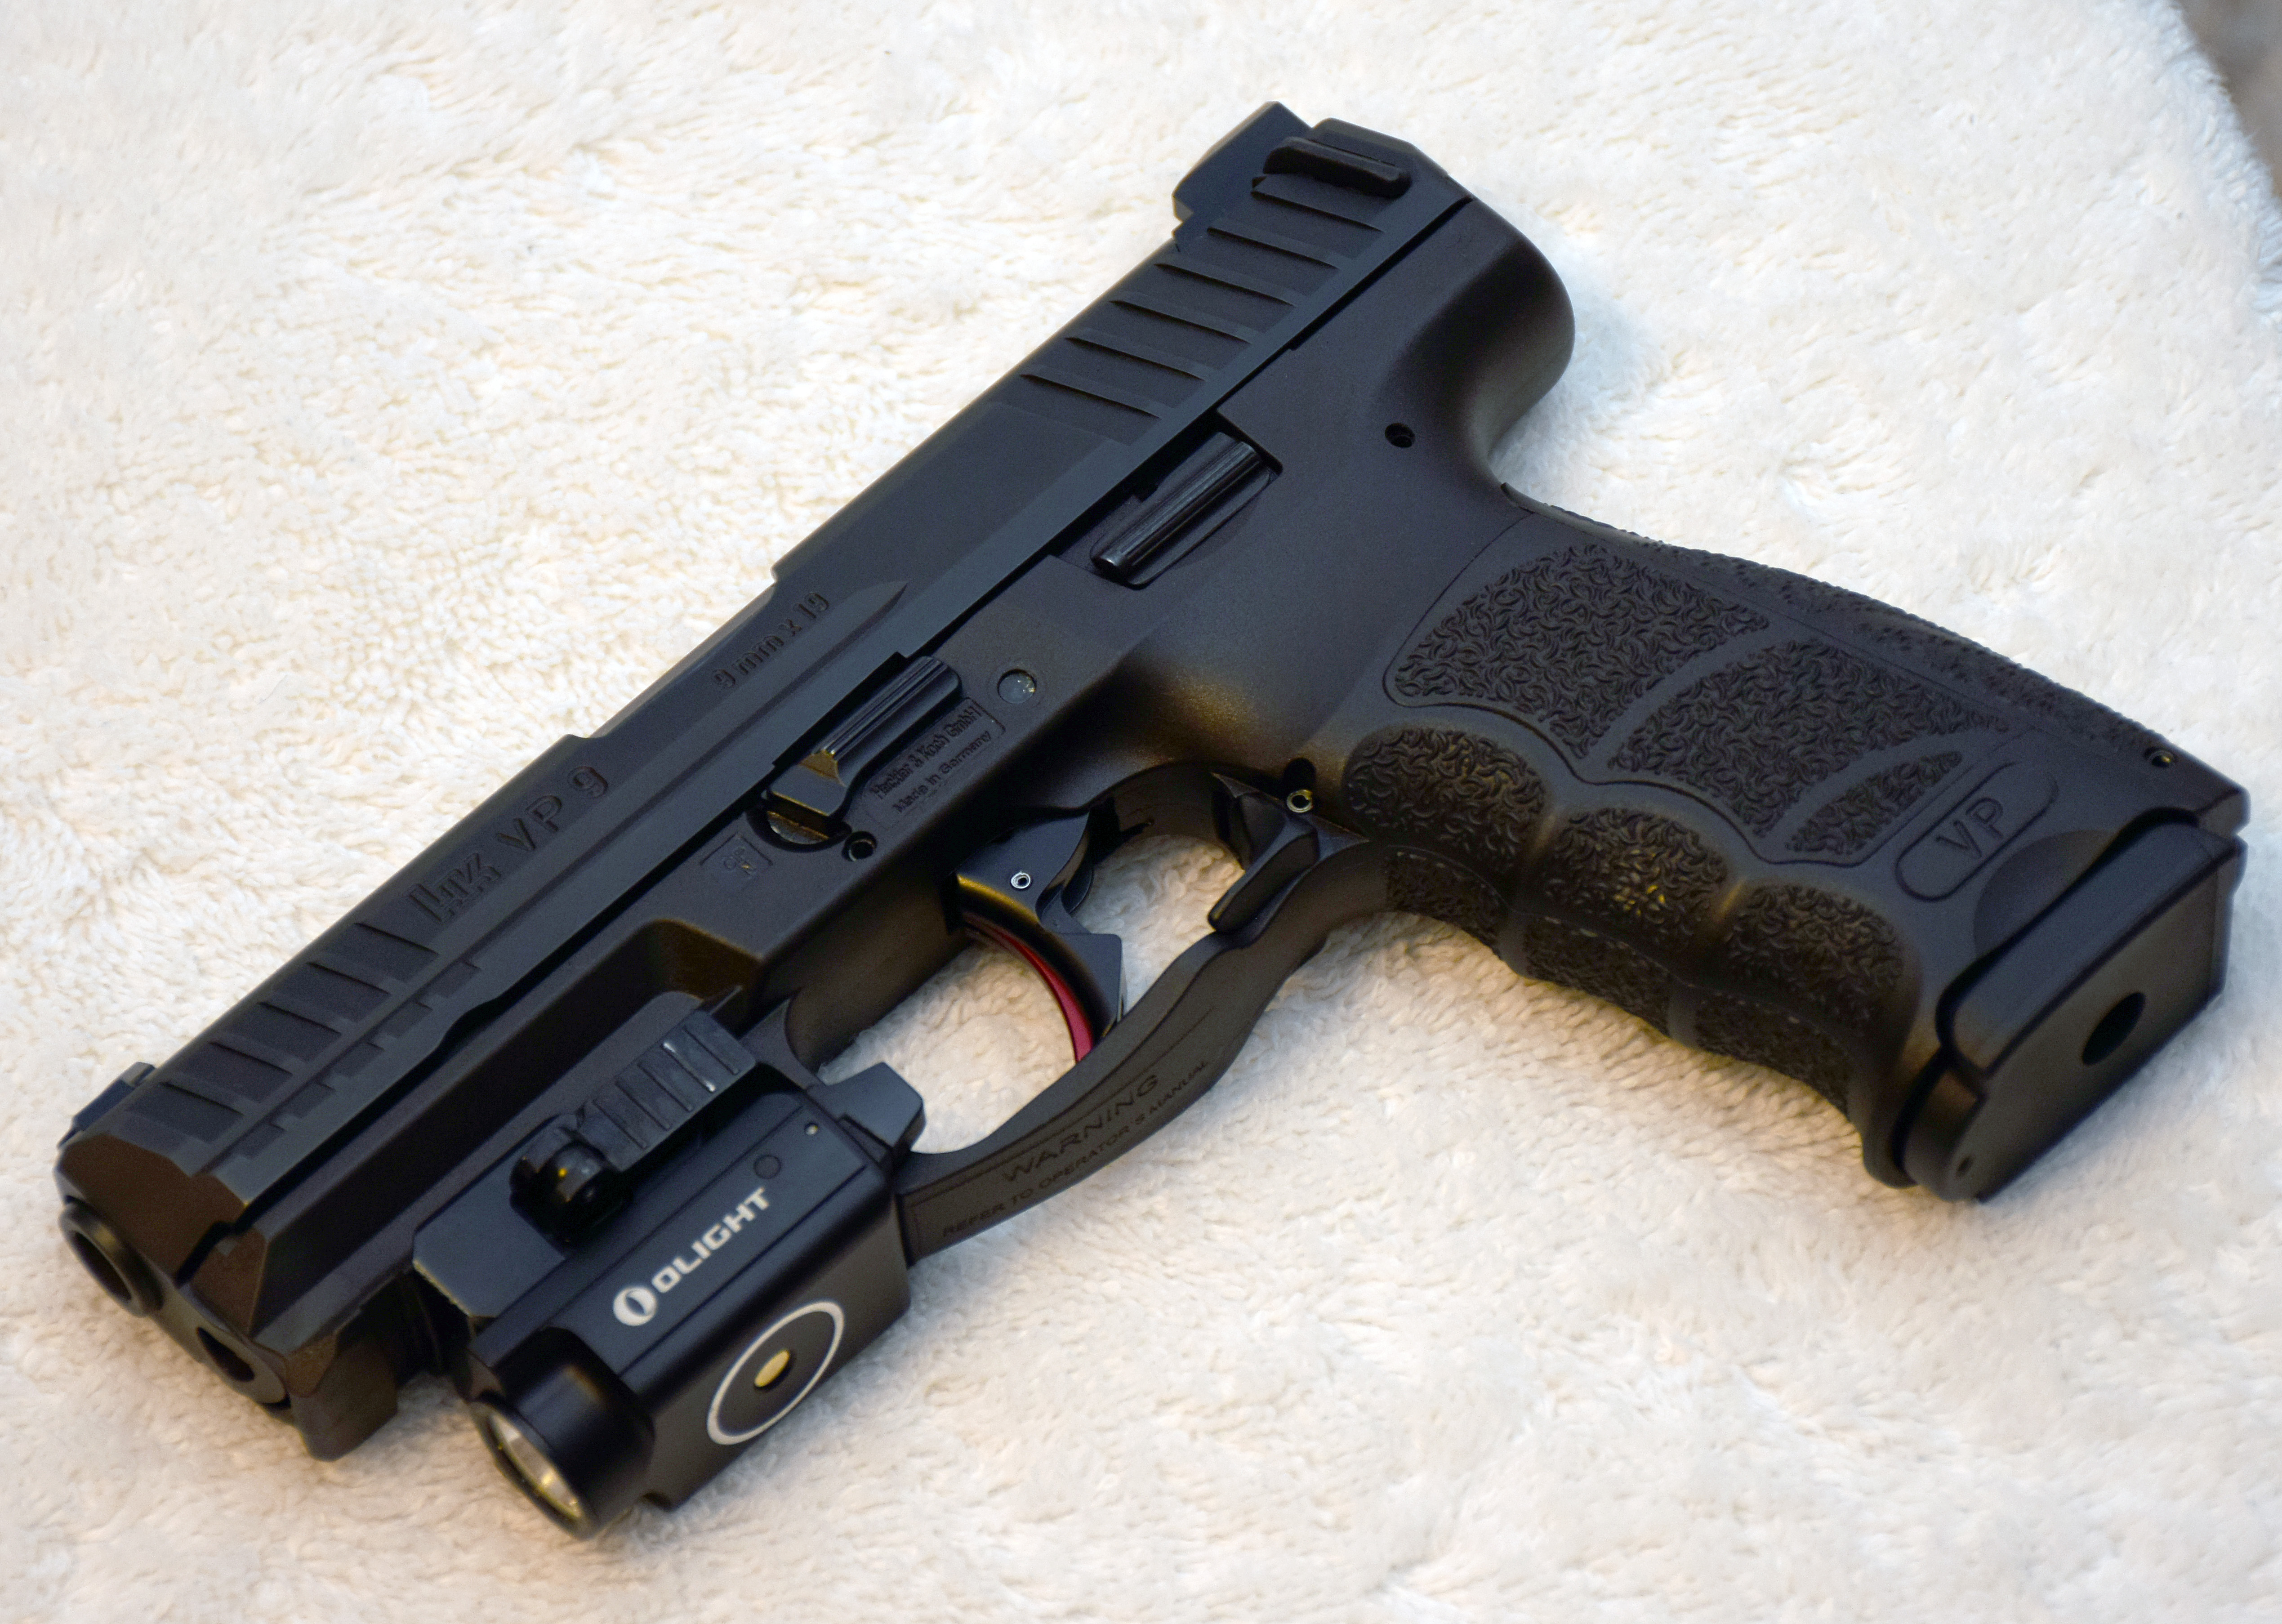 Show off your vp40 and vp9 with light.-dsc_3318.jpg